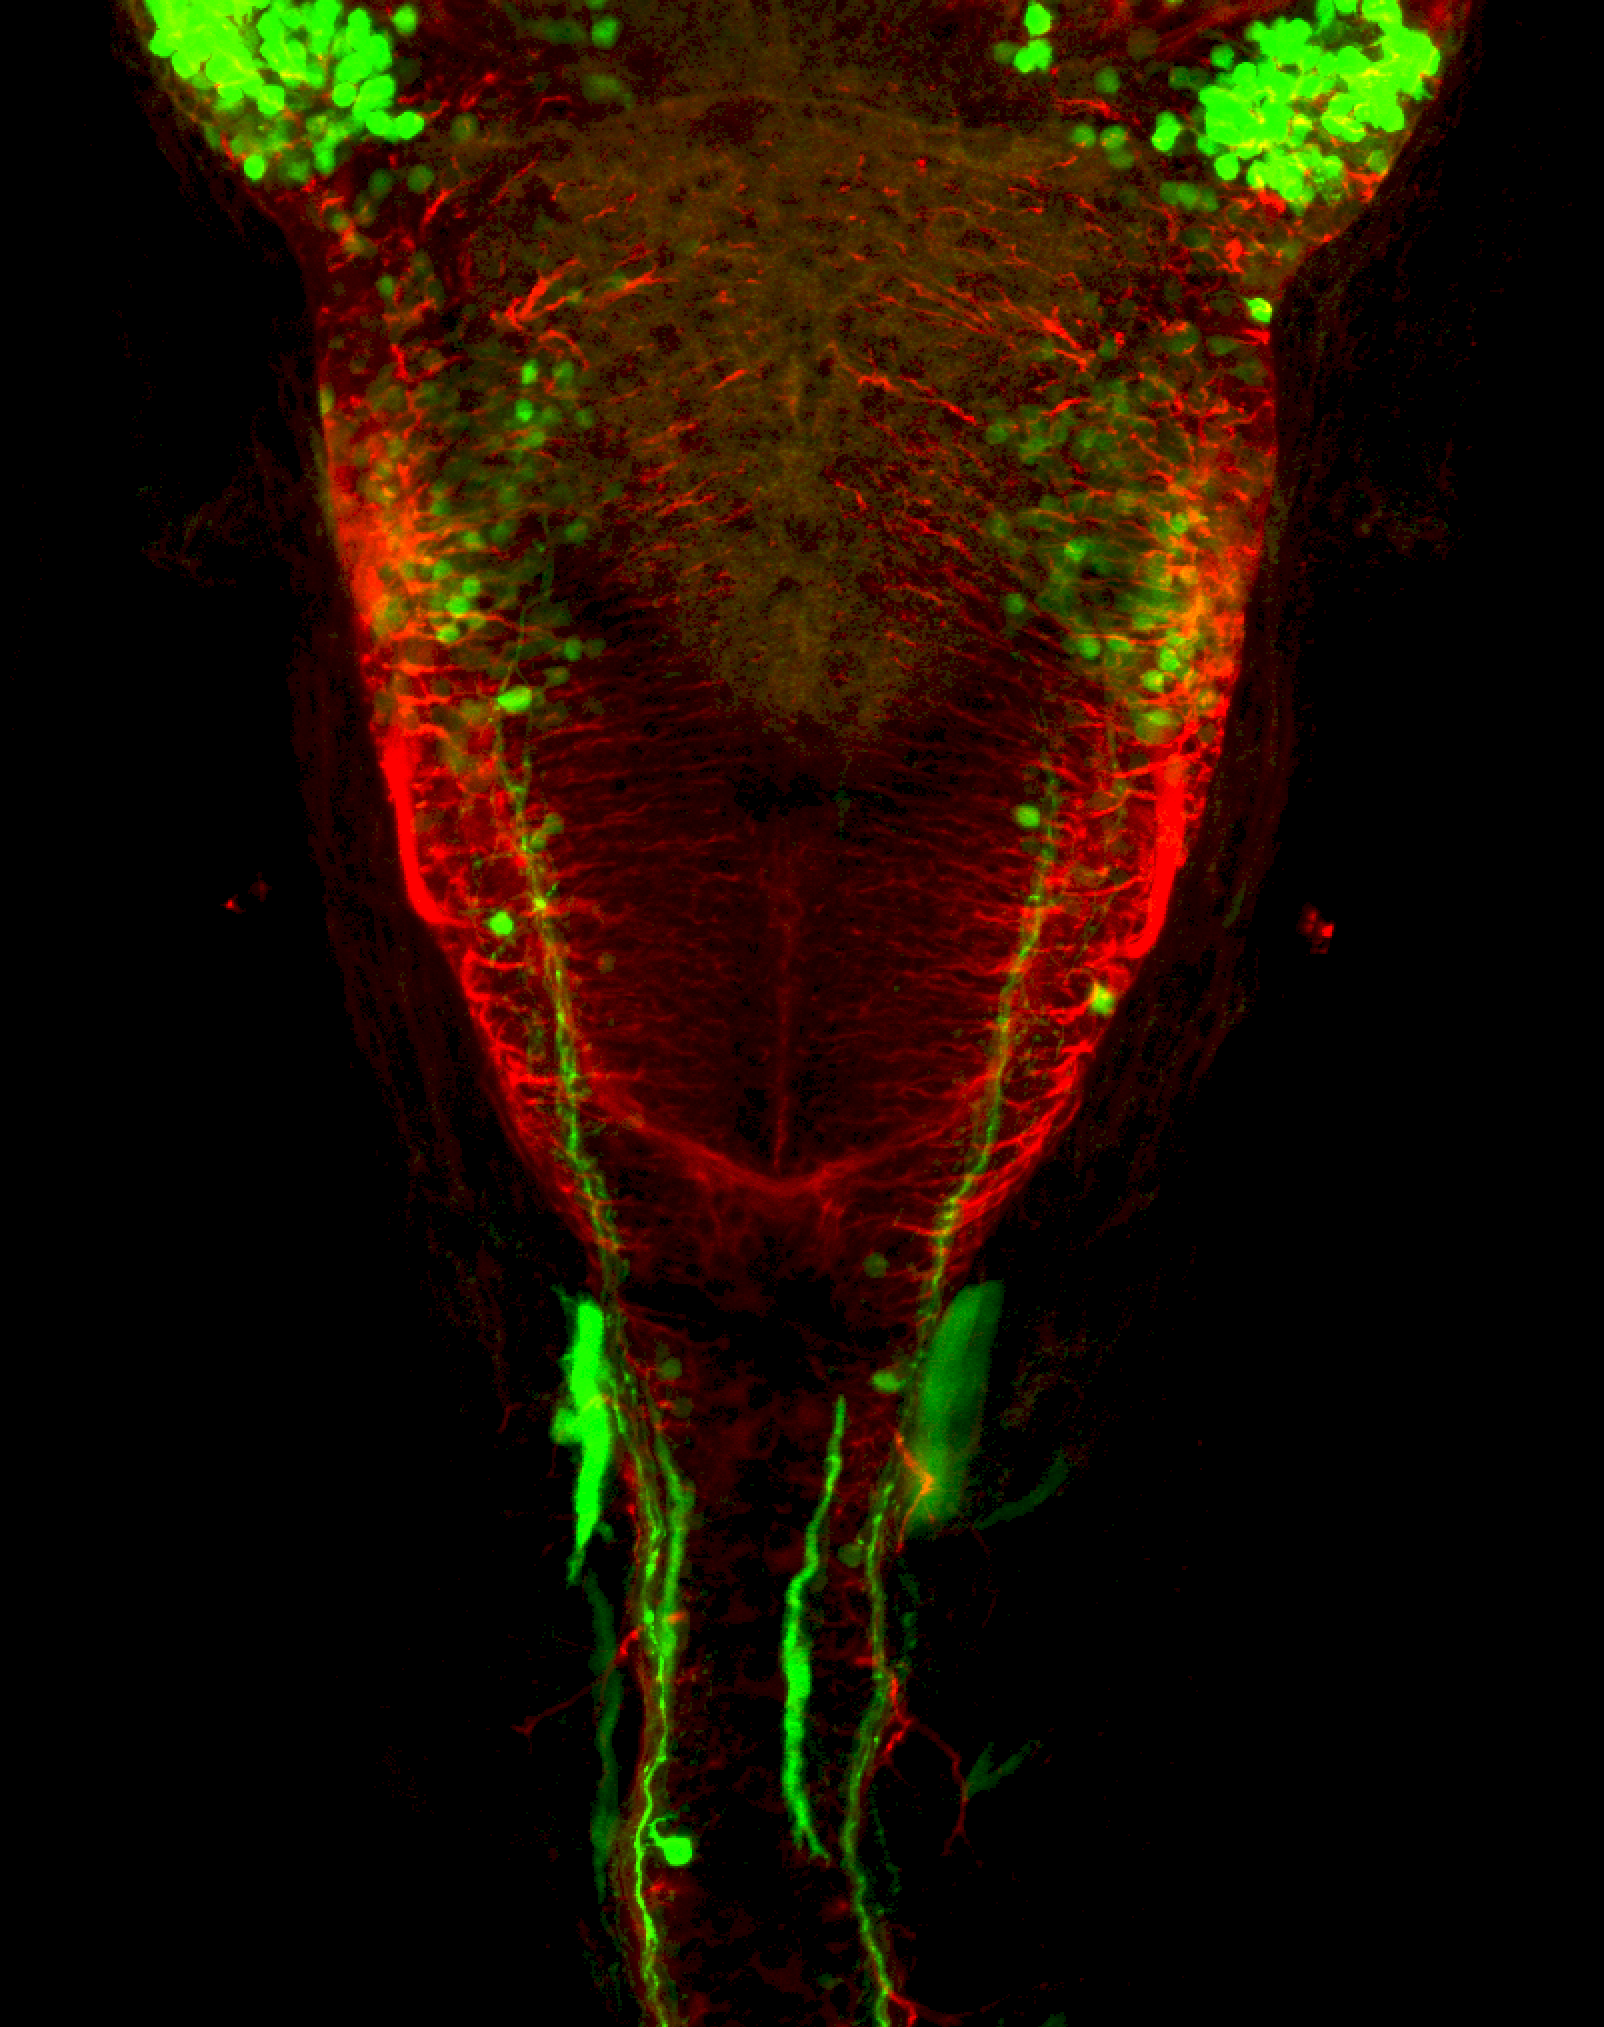 3dpf dorsal view of dlx:GFP hindbrain